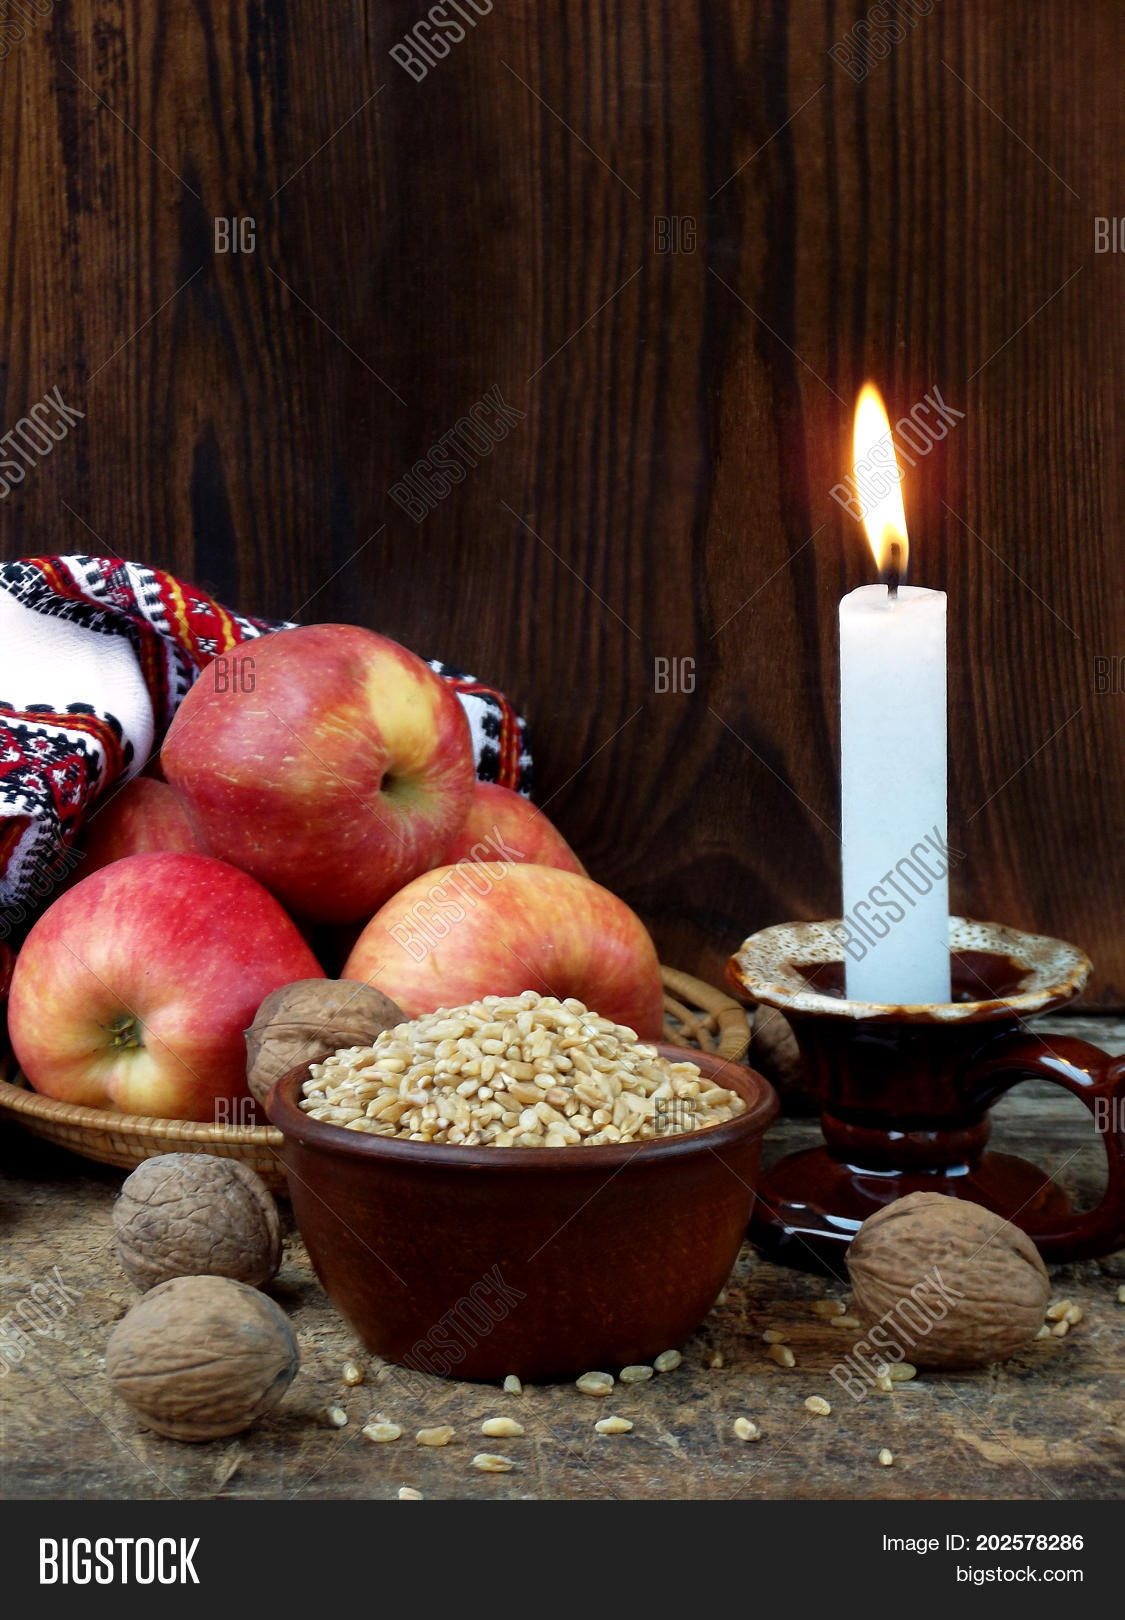 Ukrainian christmas image photo free trial bigstock ukrainian christmas concept for greeting card composition of burning candle apples walnuts m4hsunfo